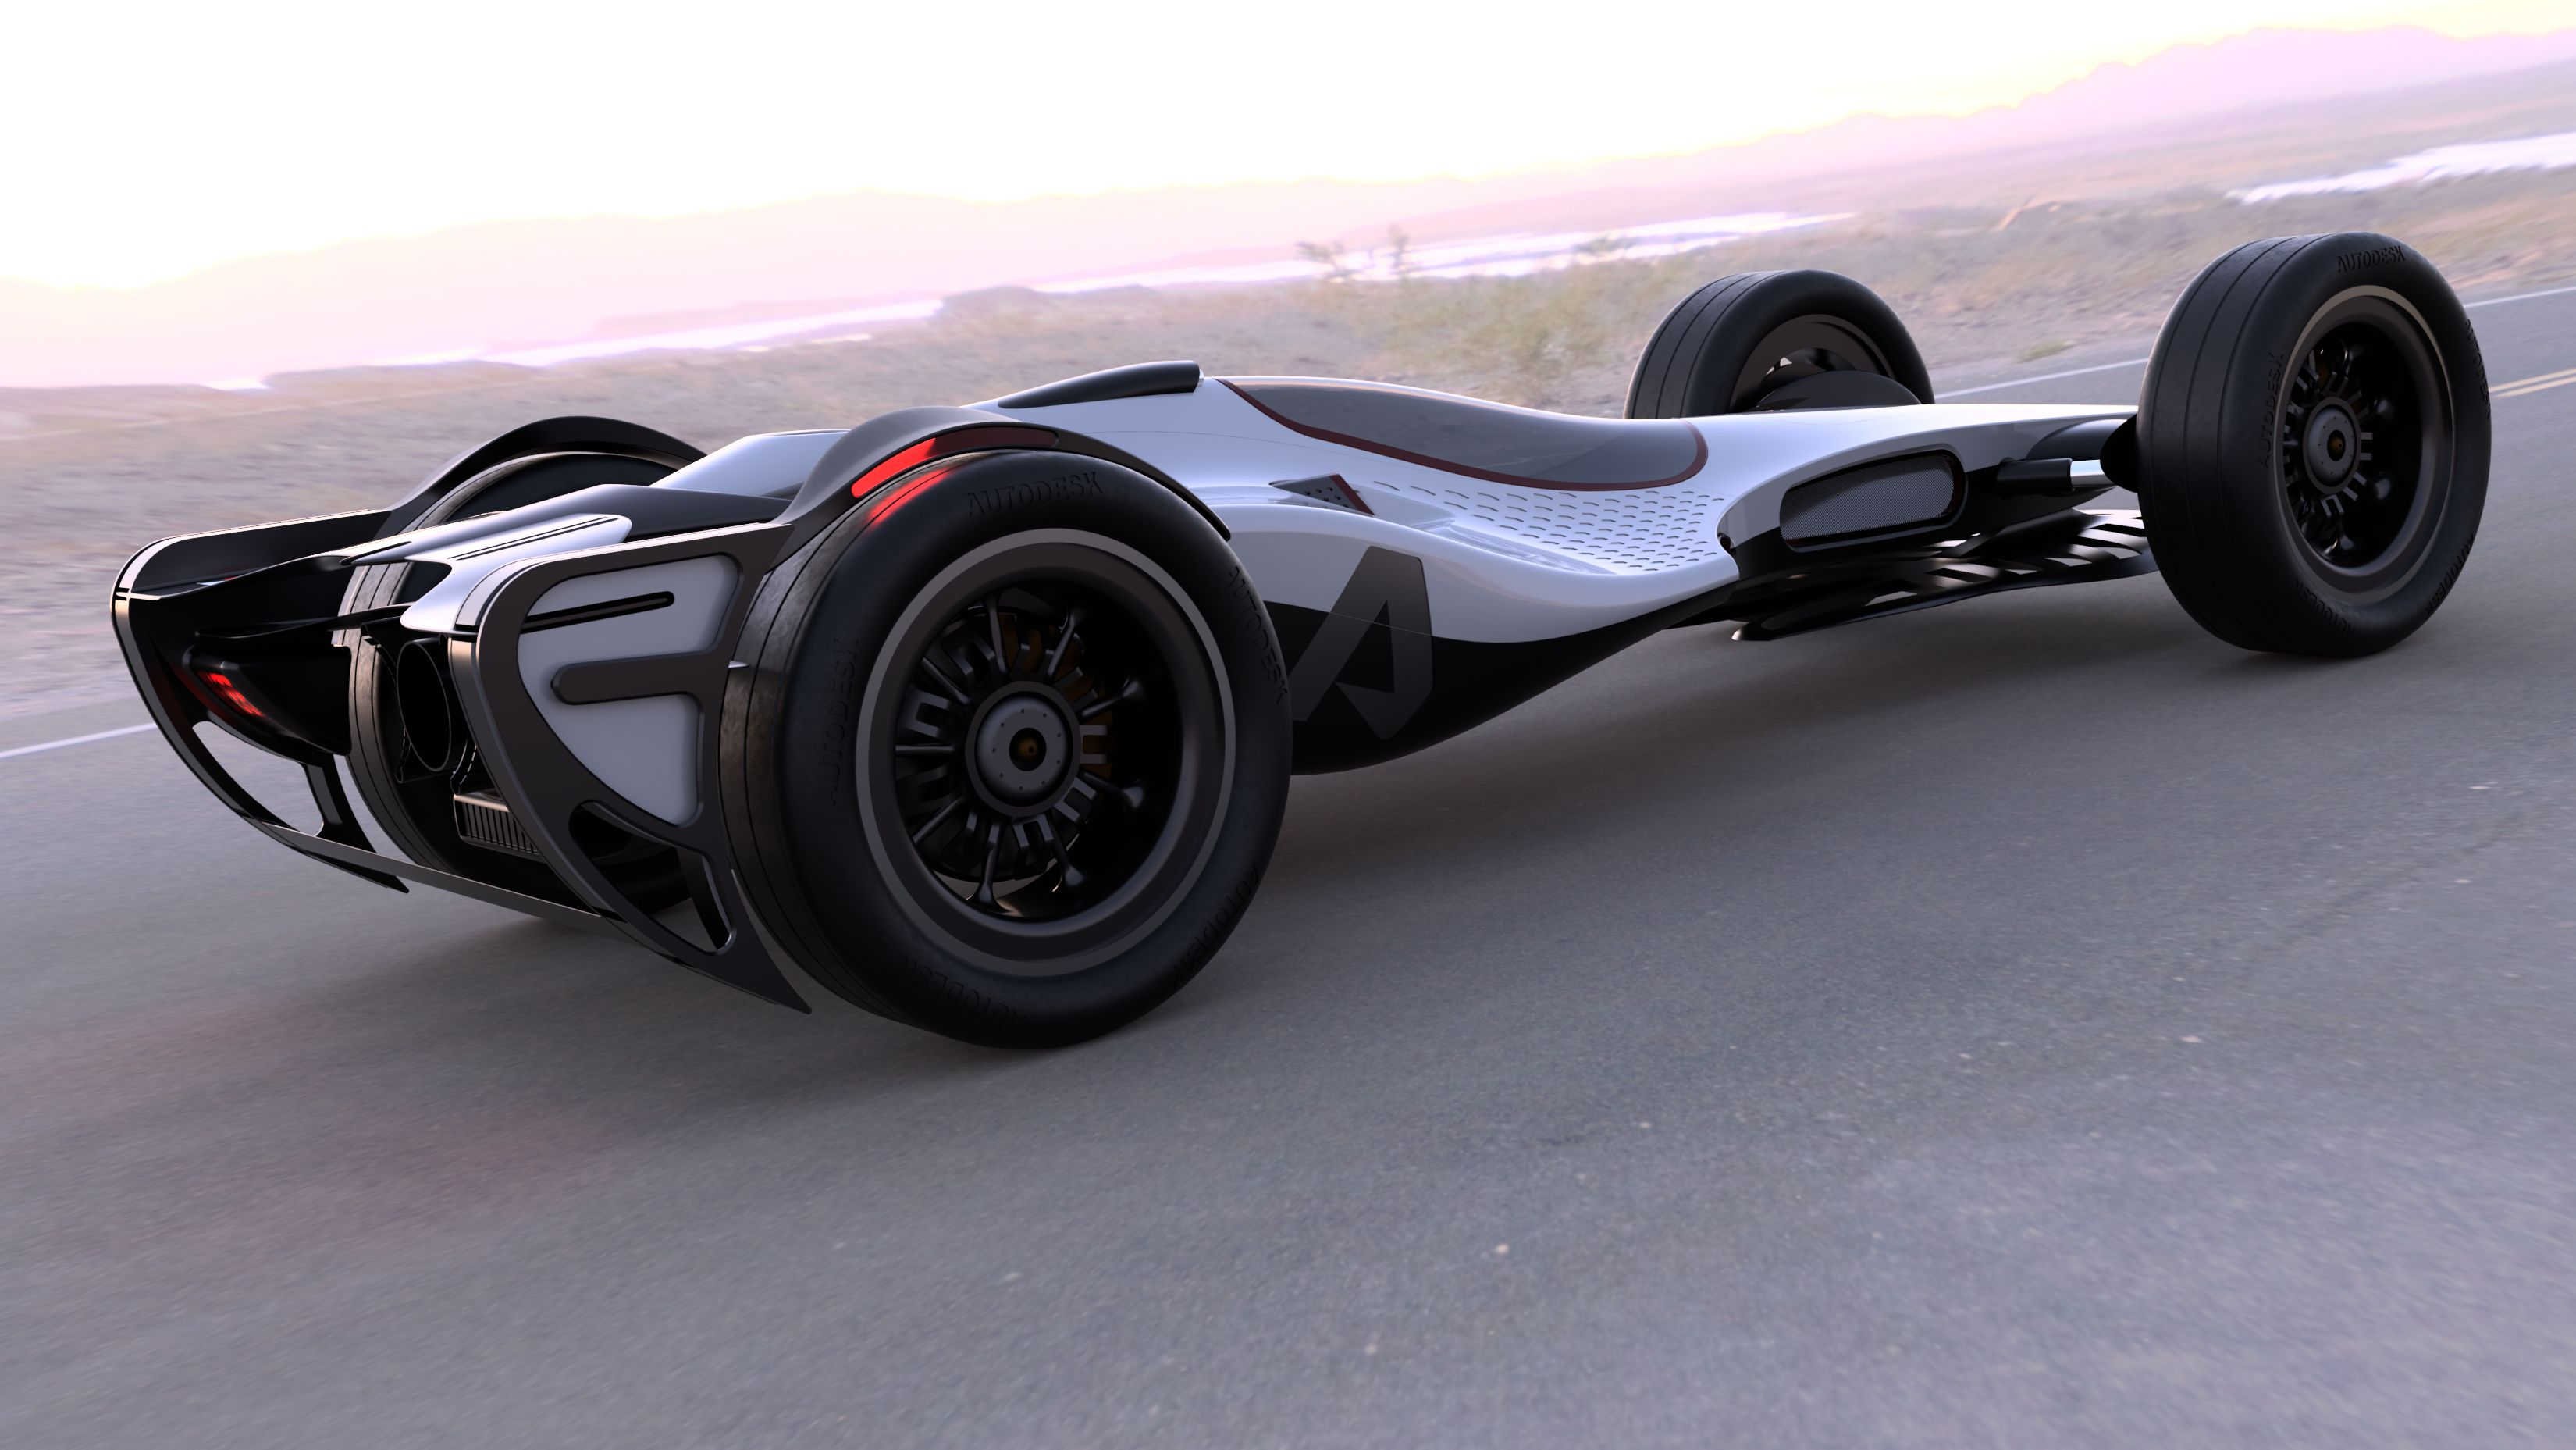 Updated-autodesk-car-2017-jan-16-01-21-54am-000-customizedview7460750194-3500-3500